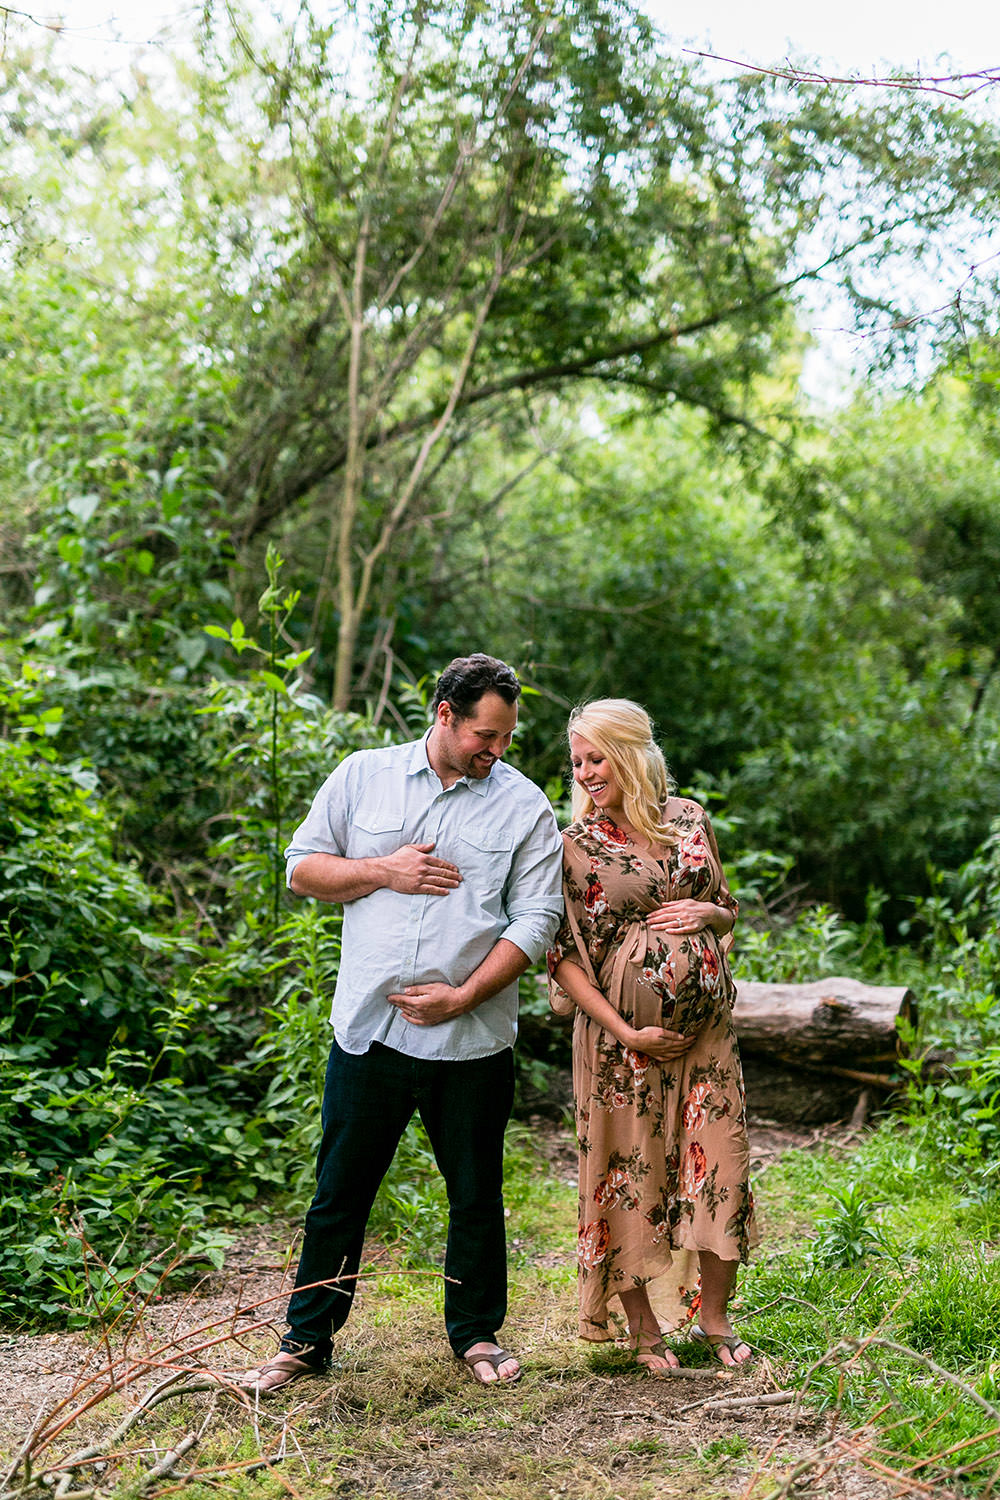 Maternity Session at Central Park in Huntington Beach, CA